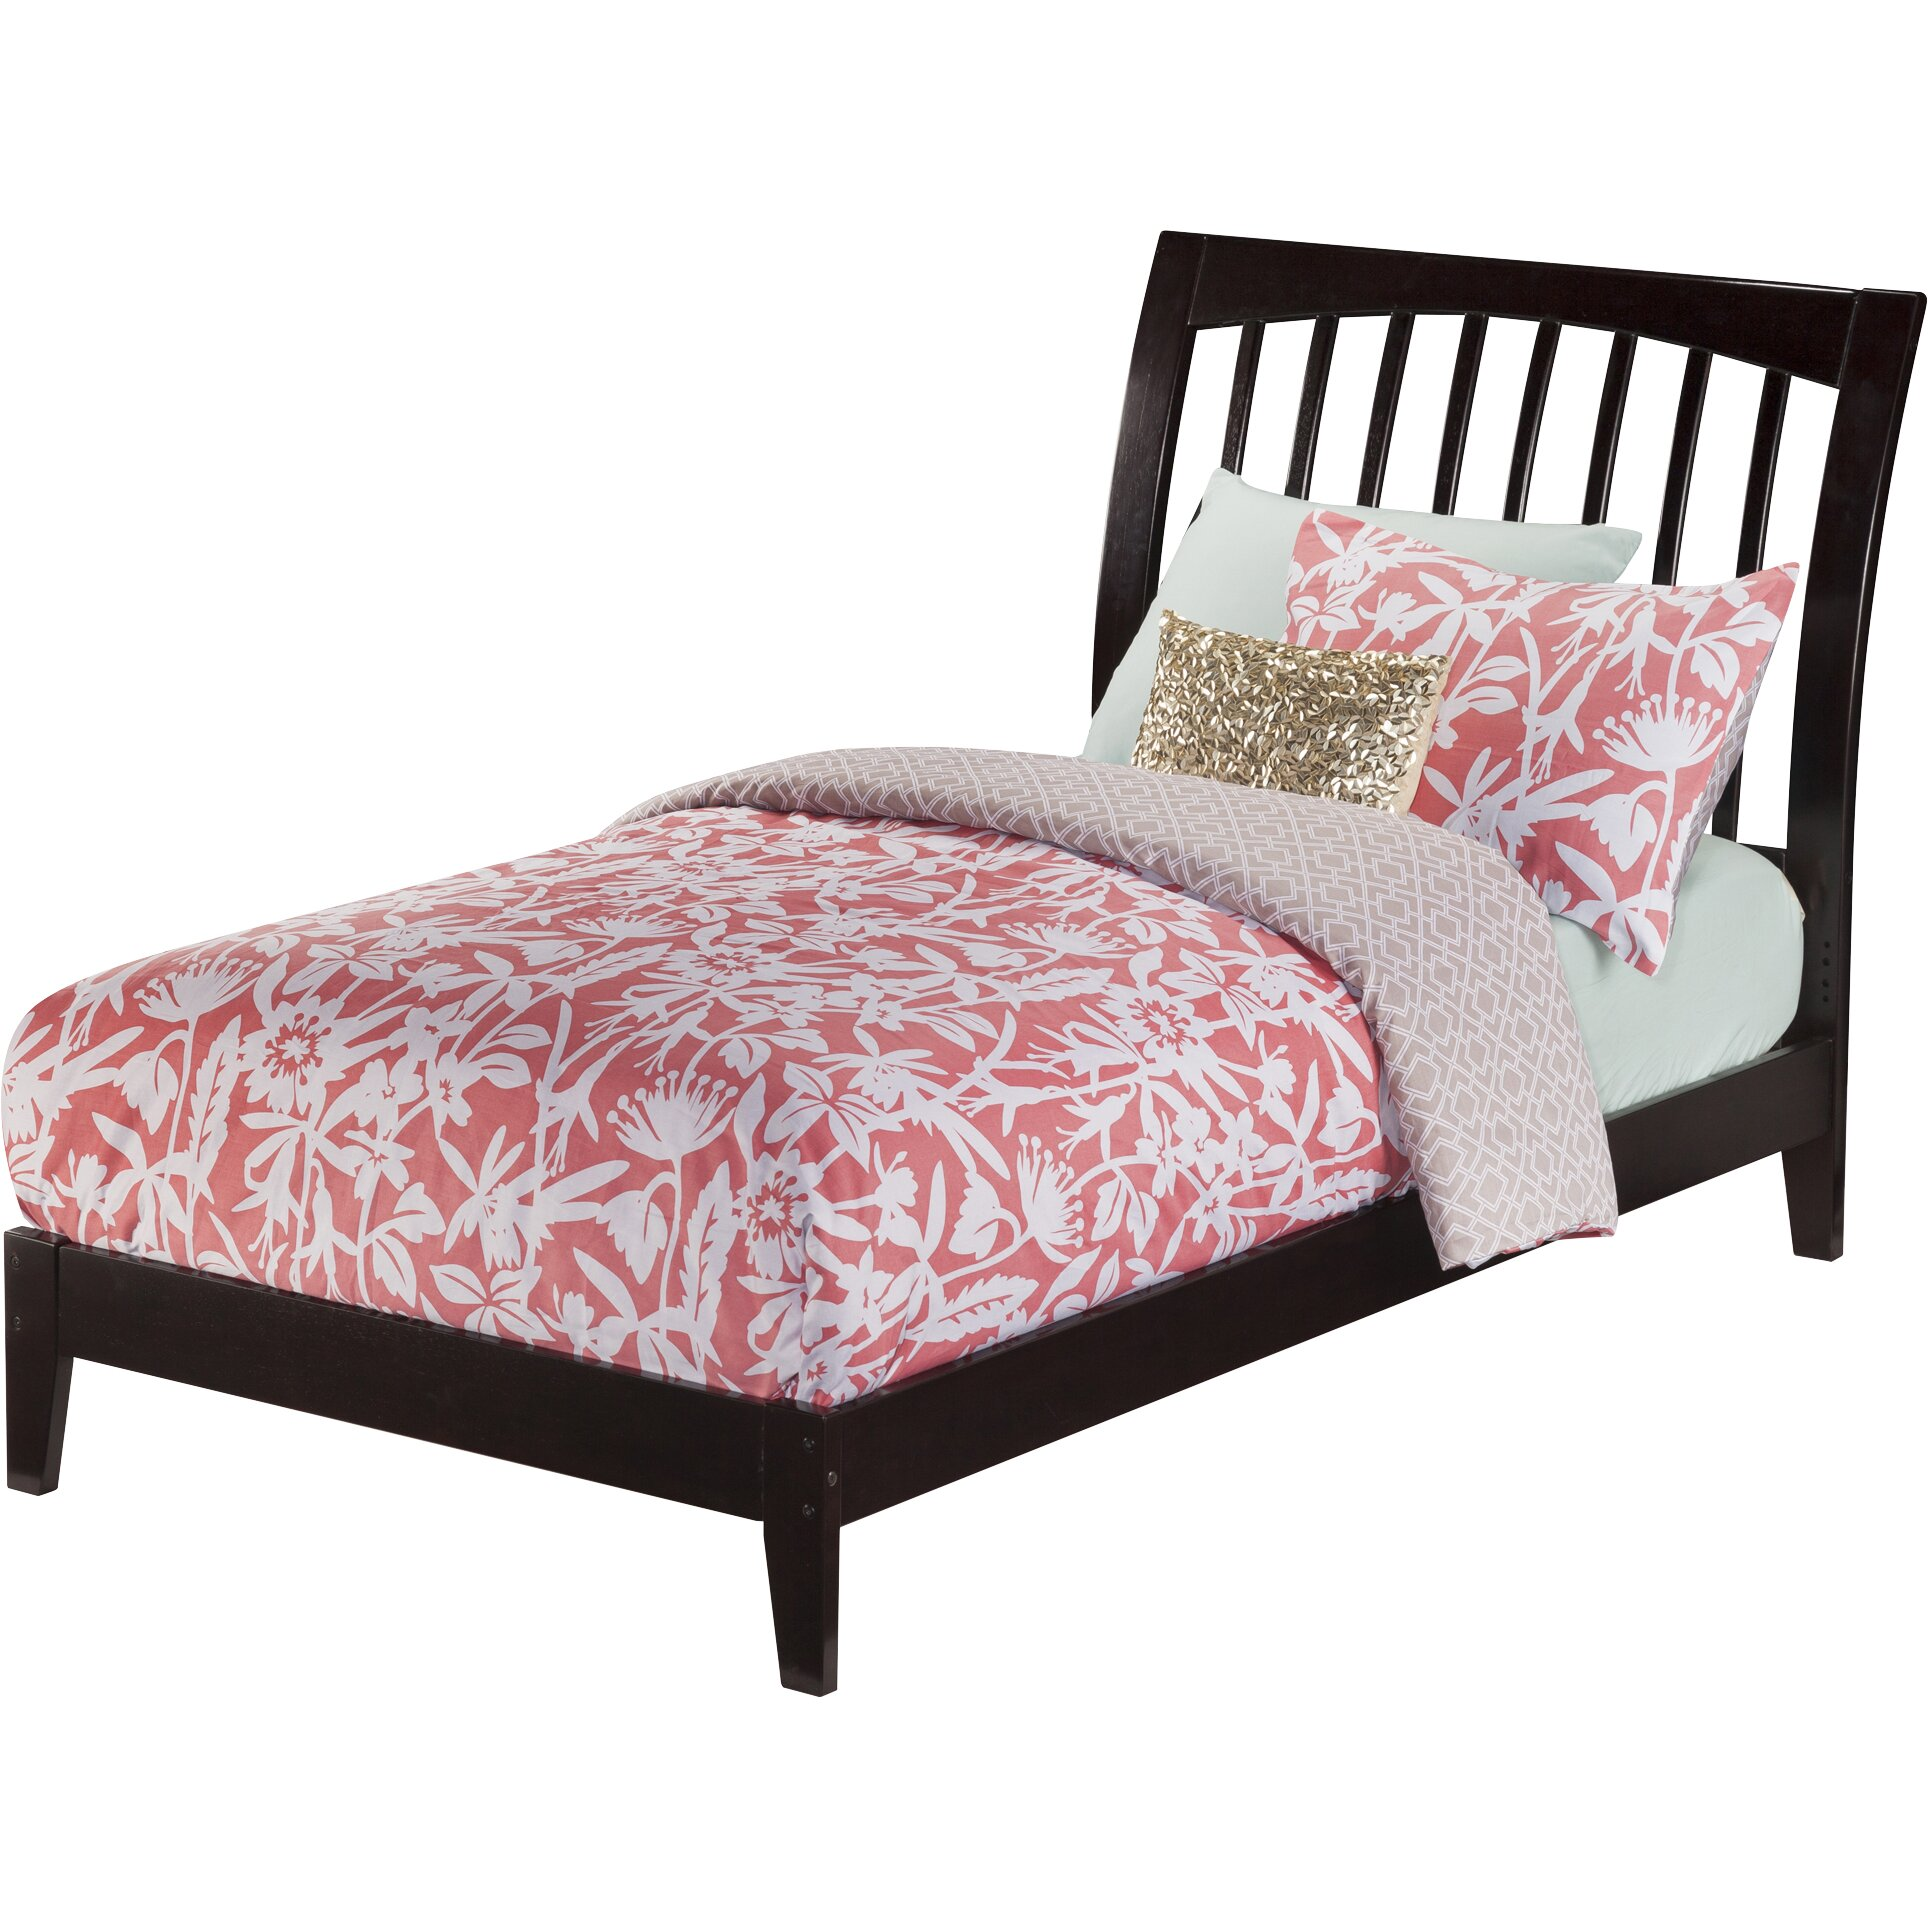 Atlantic furniture orleans platform bed reviews wayfair for Foot of bed furniture